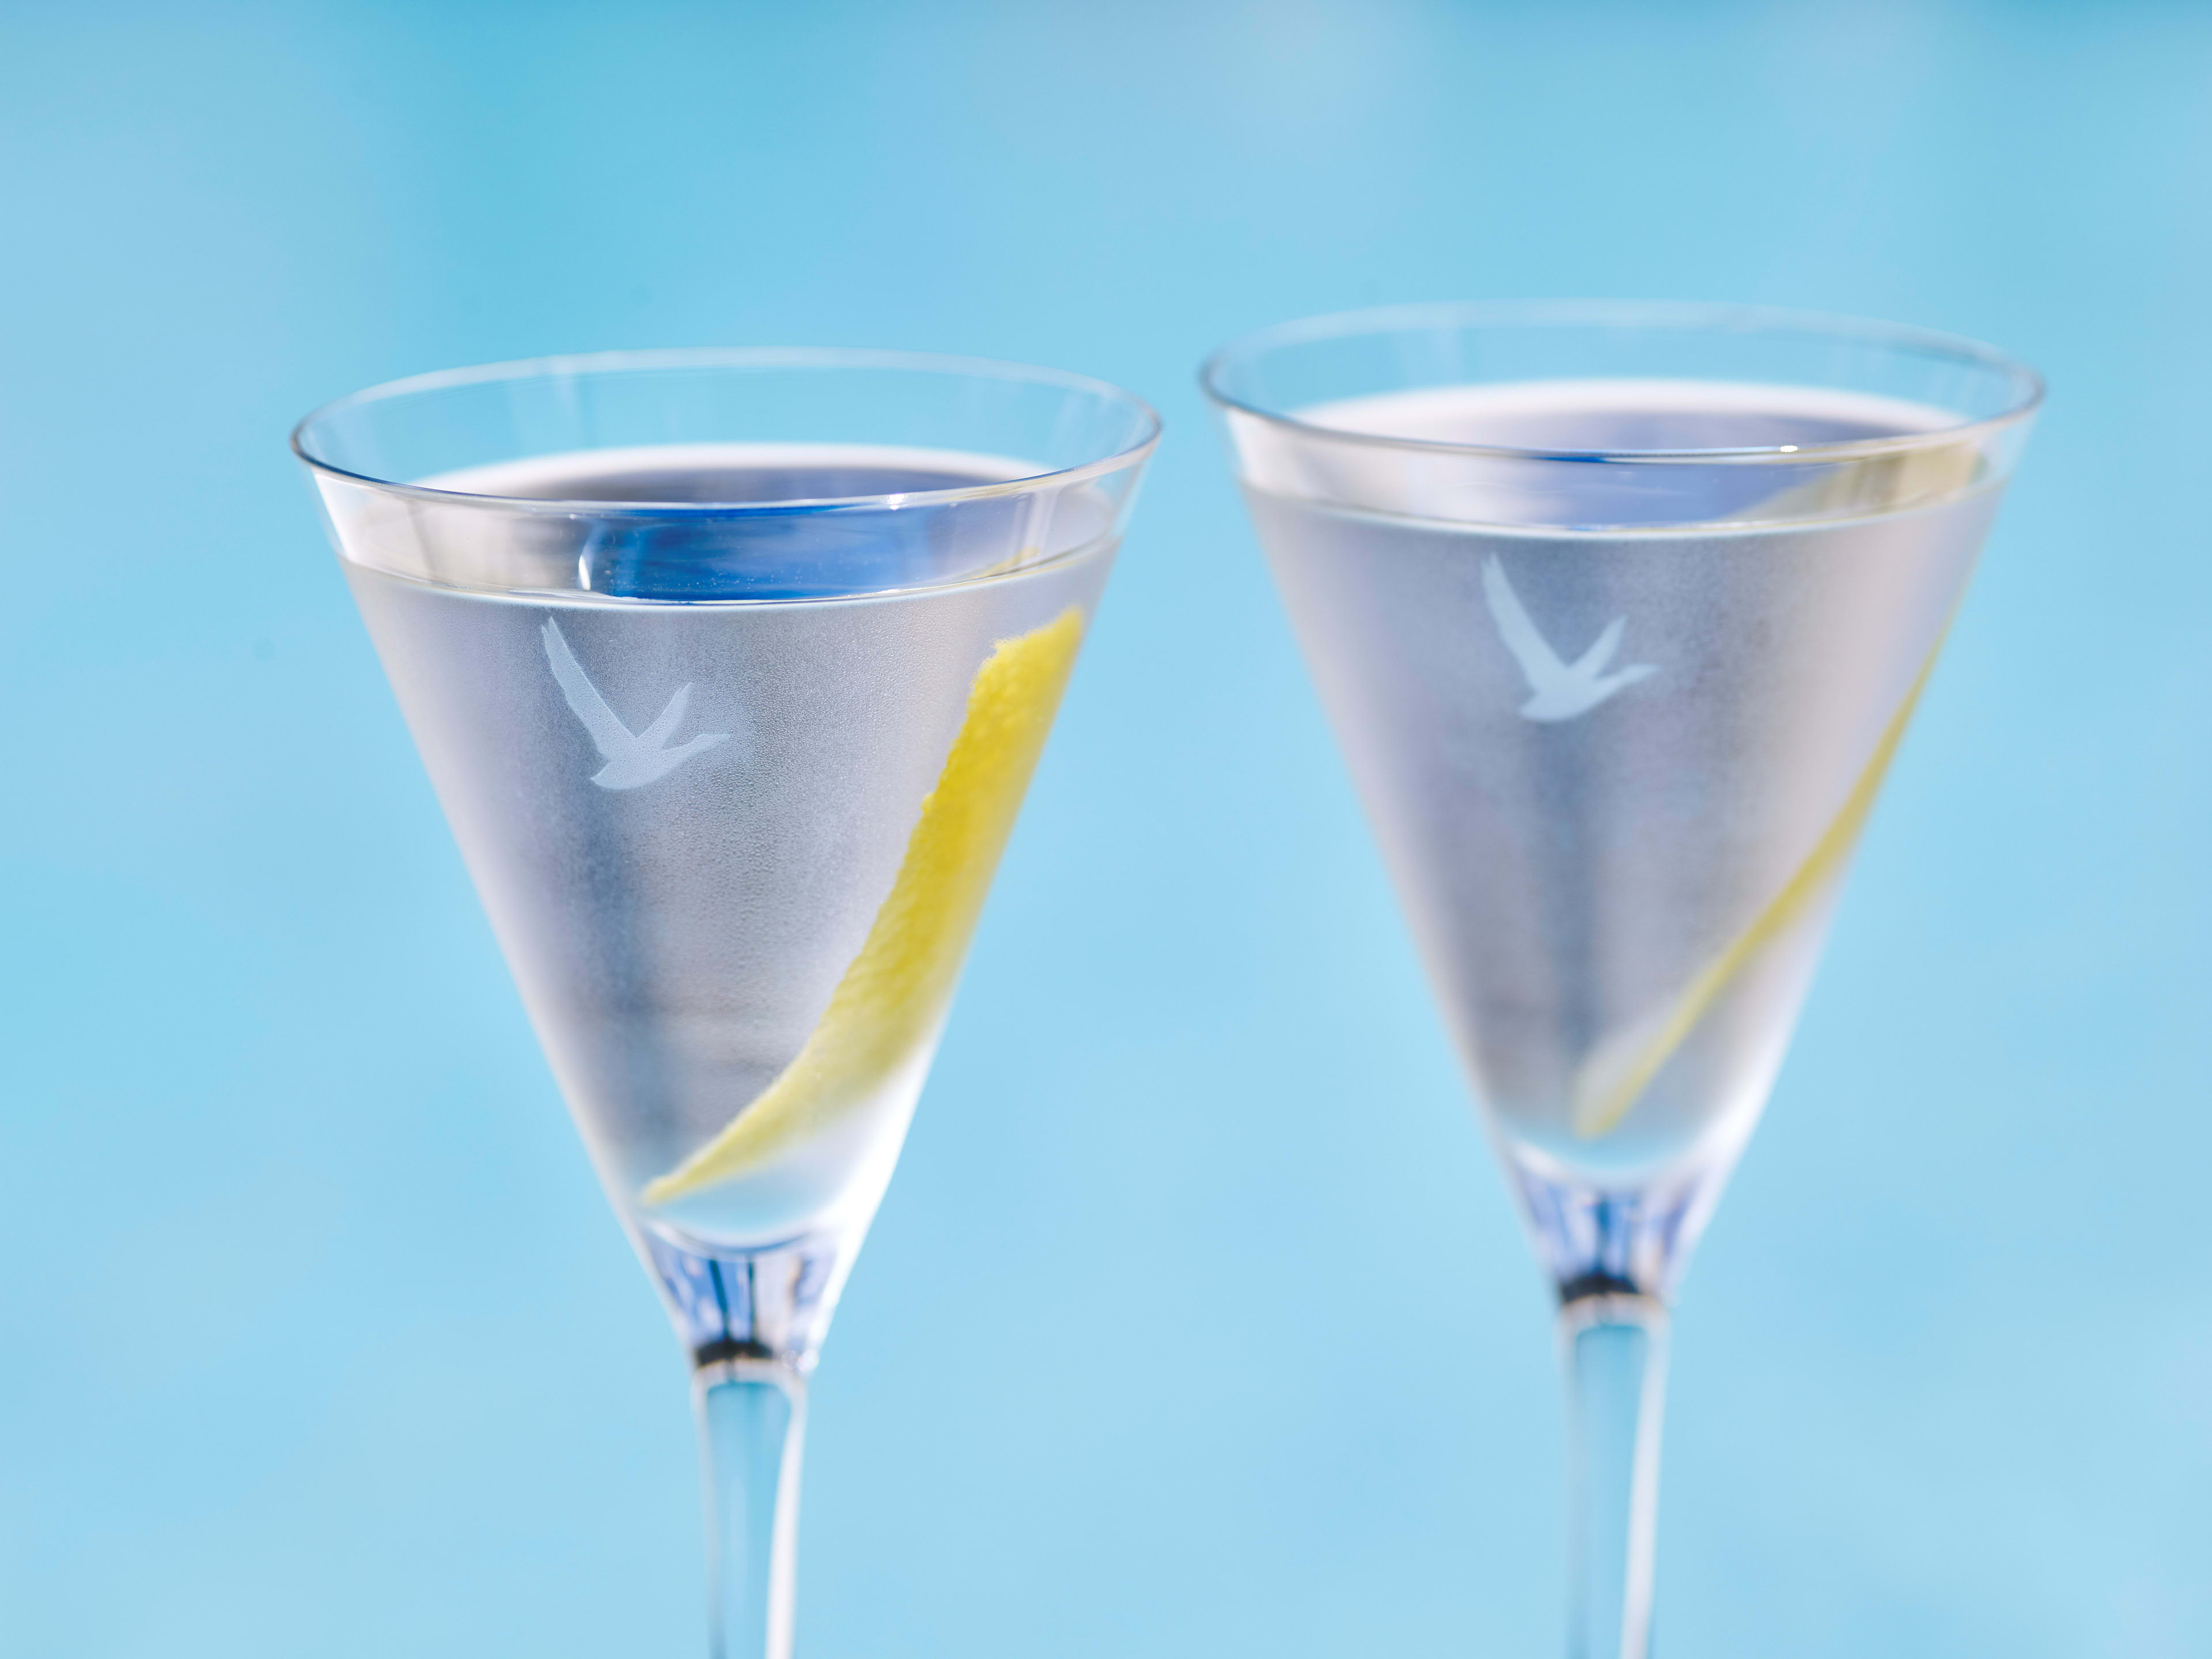 Richard Moran Grey Goose Luxury Drinks 022